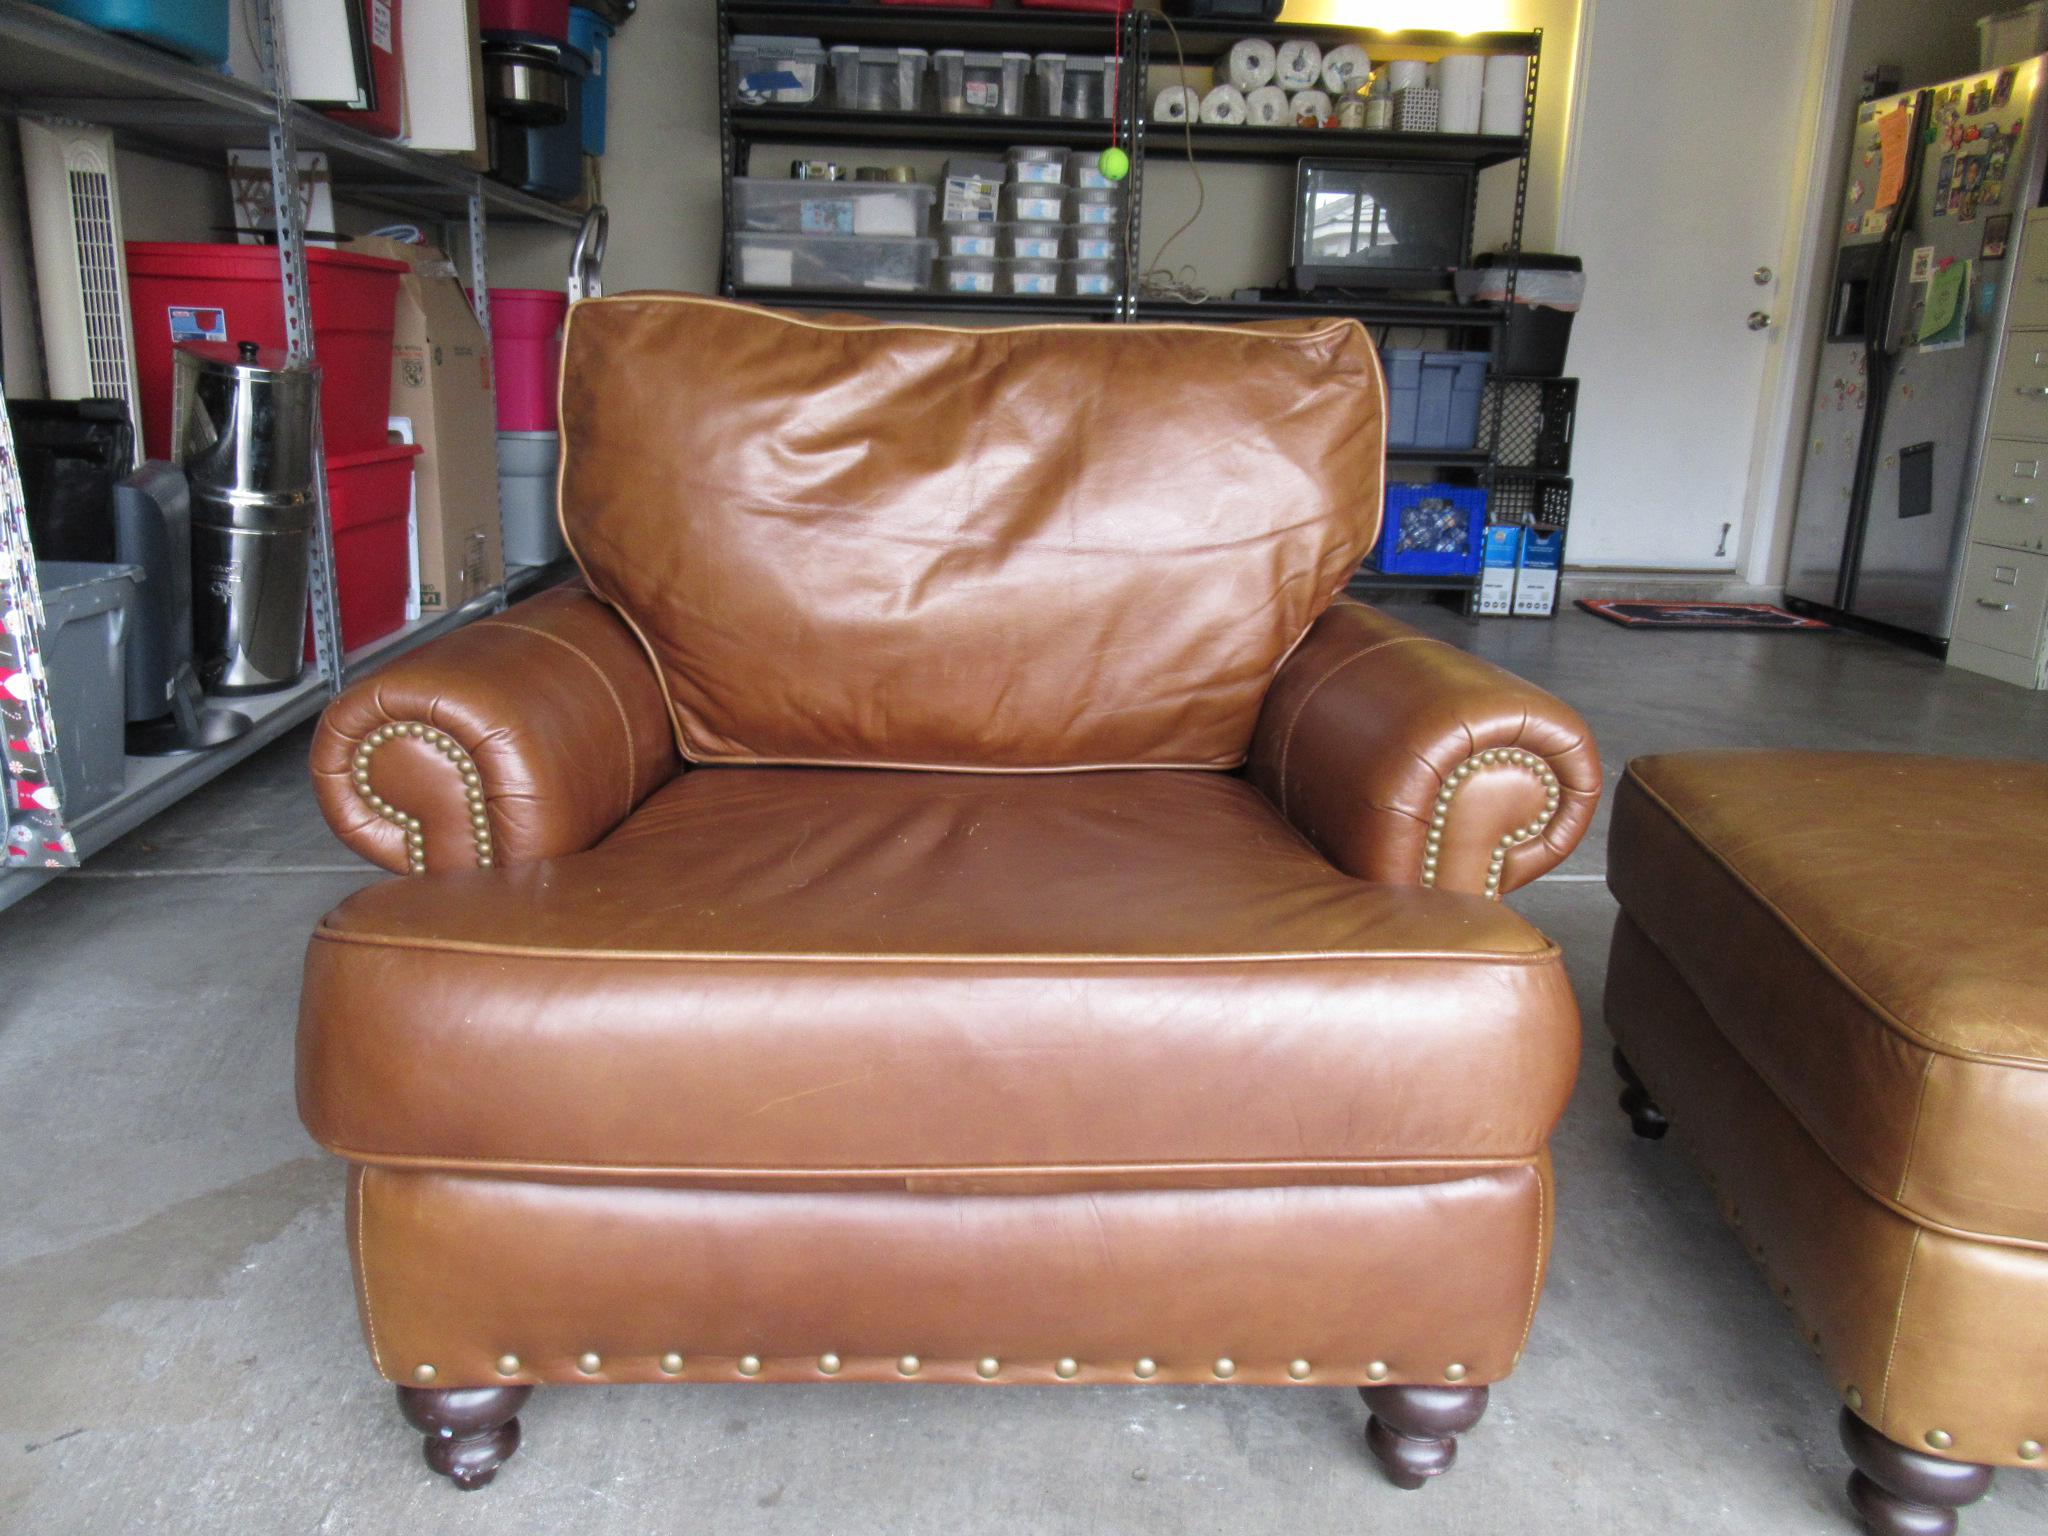 bernhardt brown leather club chair minnie mouse chairs for kids modern light ottoman chairish this was included in the sale of a home we bought i only know traditional